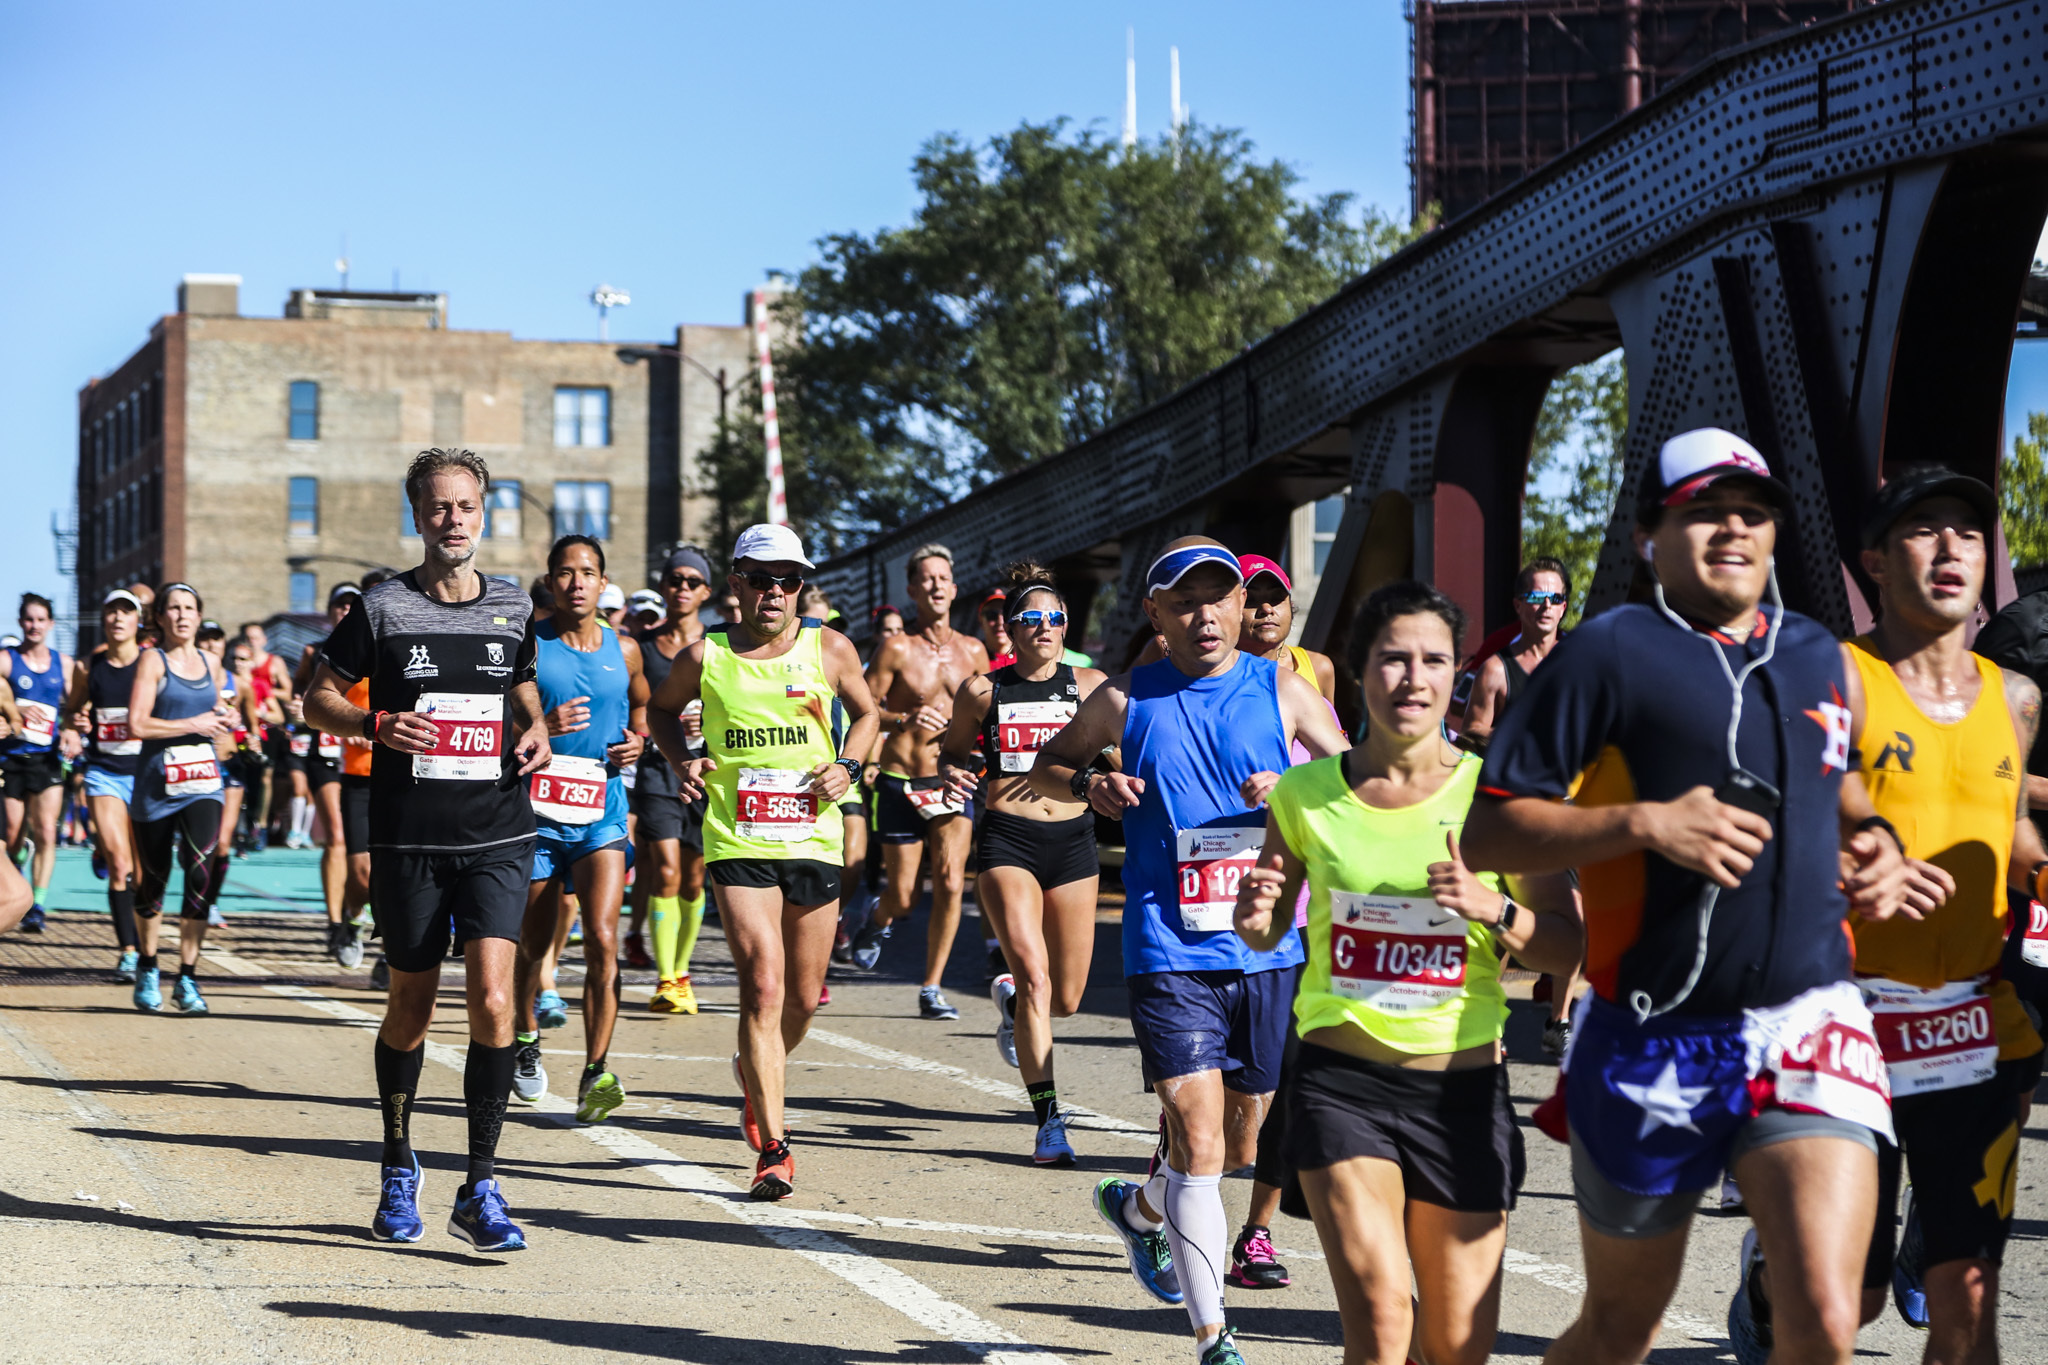 Run a free 5K race in Chicago parks this summer